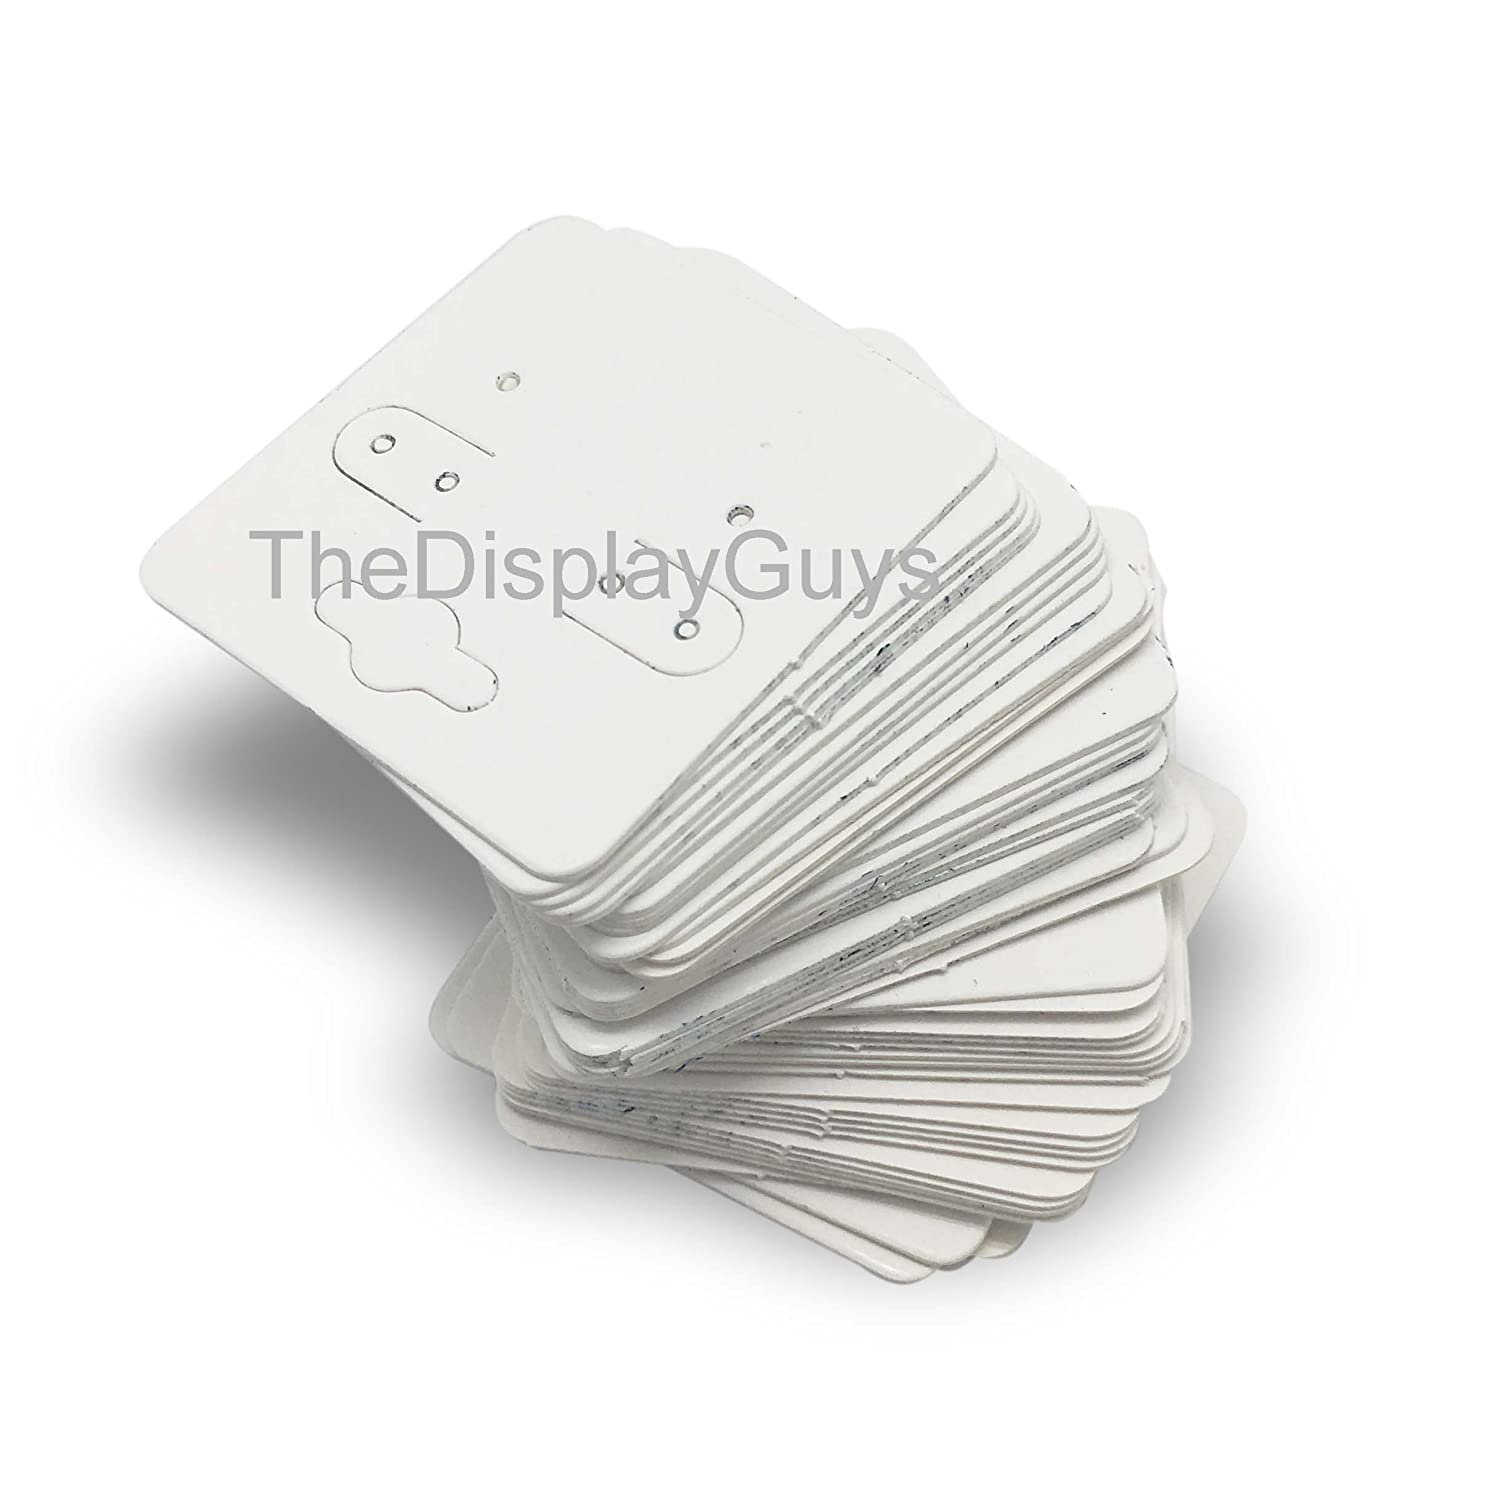 47mm x 123mm The Display Guys Pack of 100 pcs 1 7//8 X 4 3//4 inch Kraft Fold Over Paper Necklace Earrings Display Hanging Cards for Jewelry Accessory Display